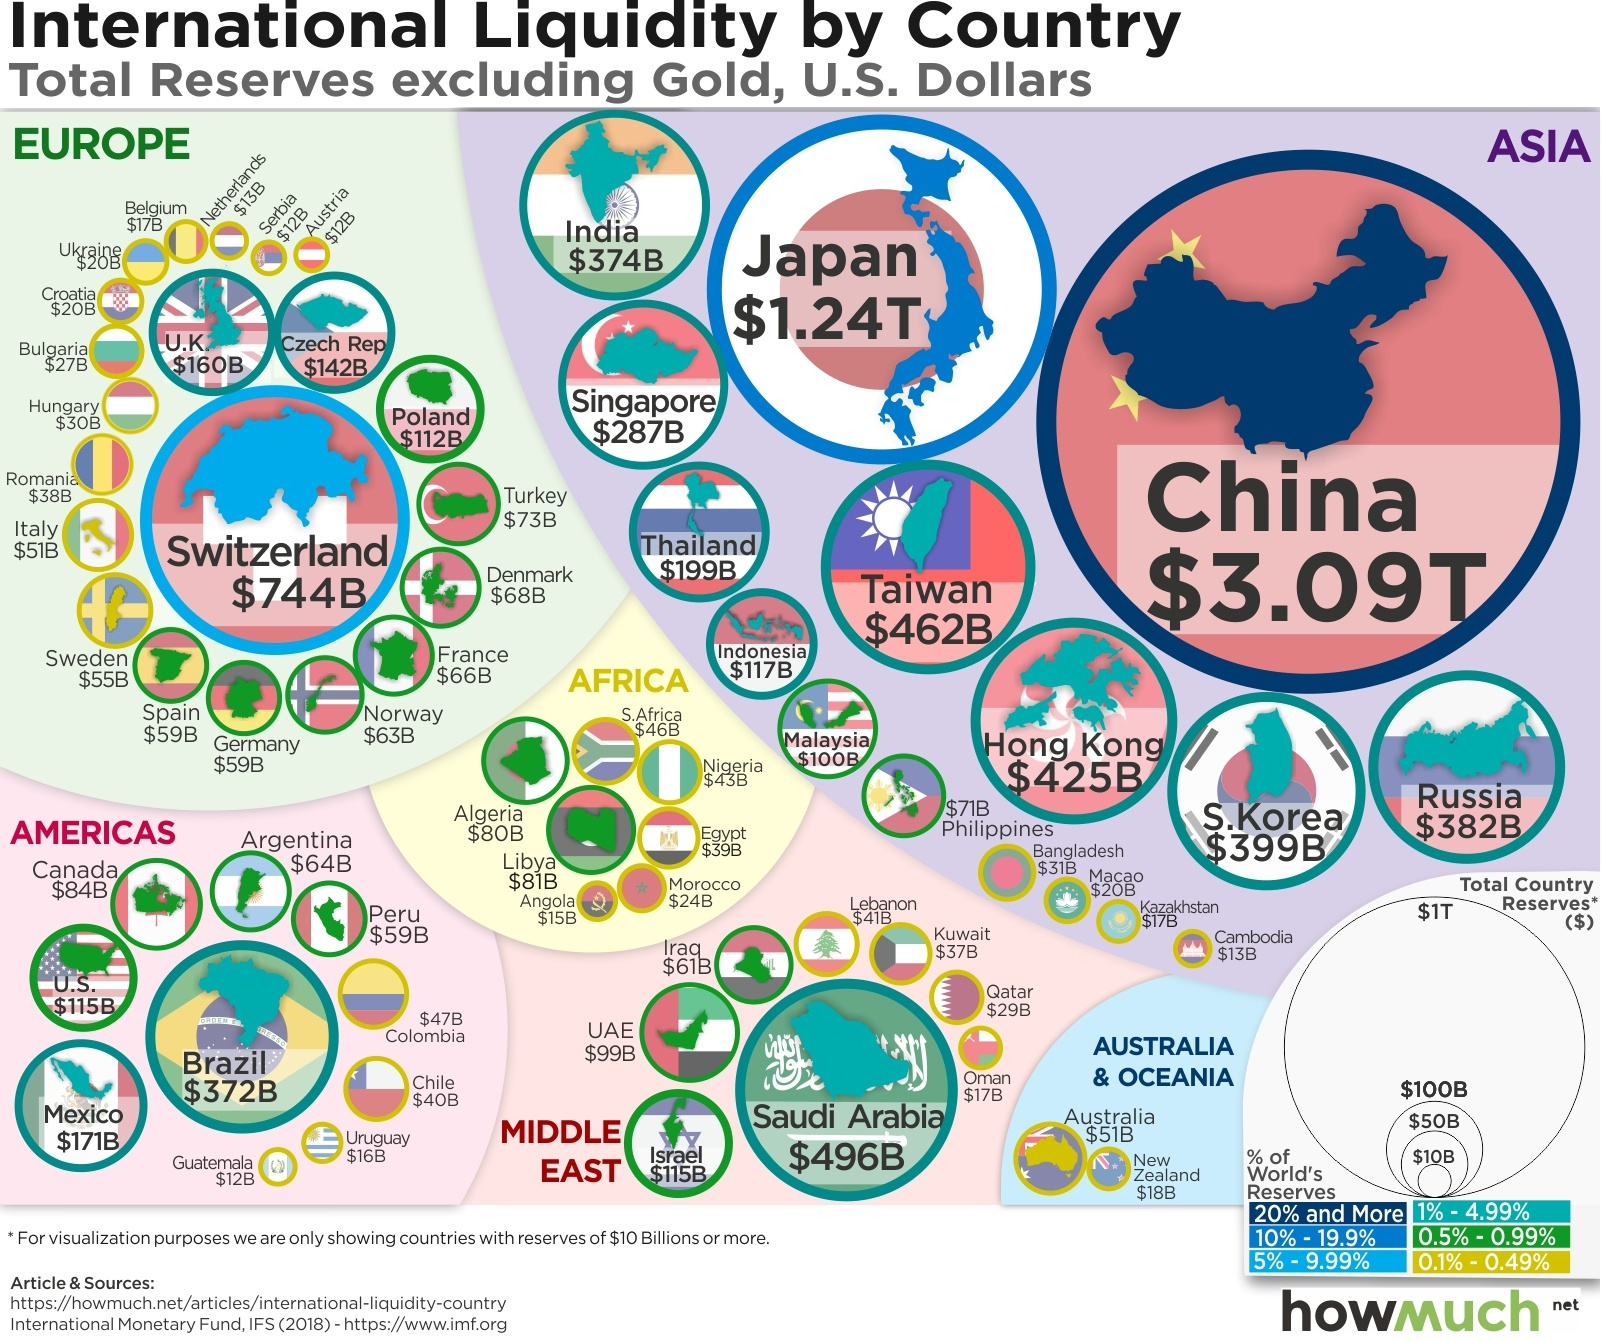 interenational liiquidity by country